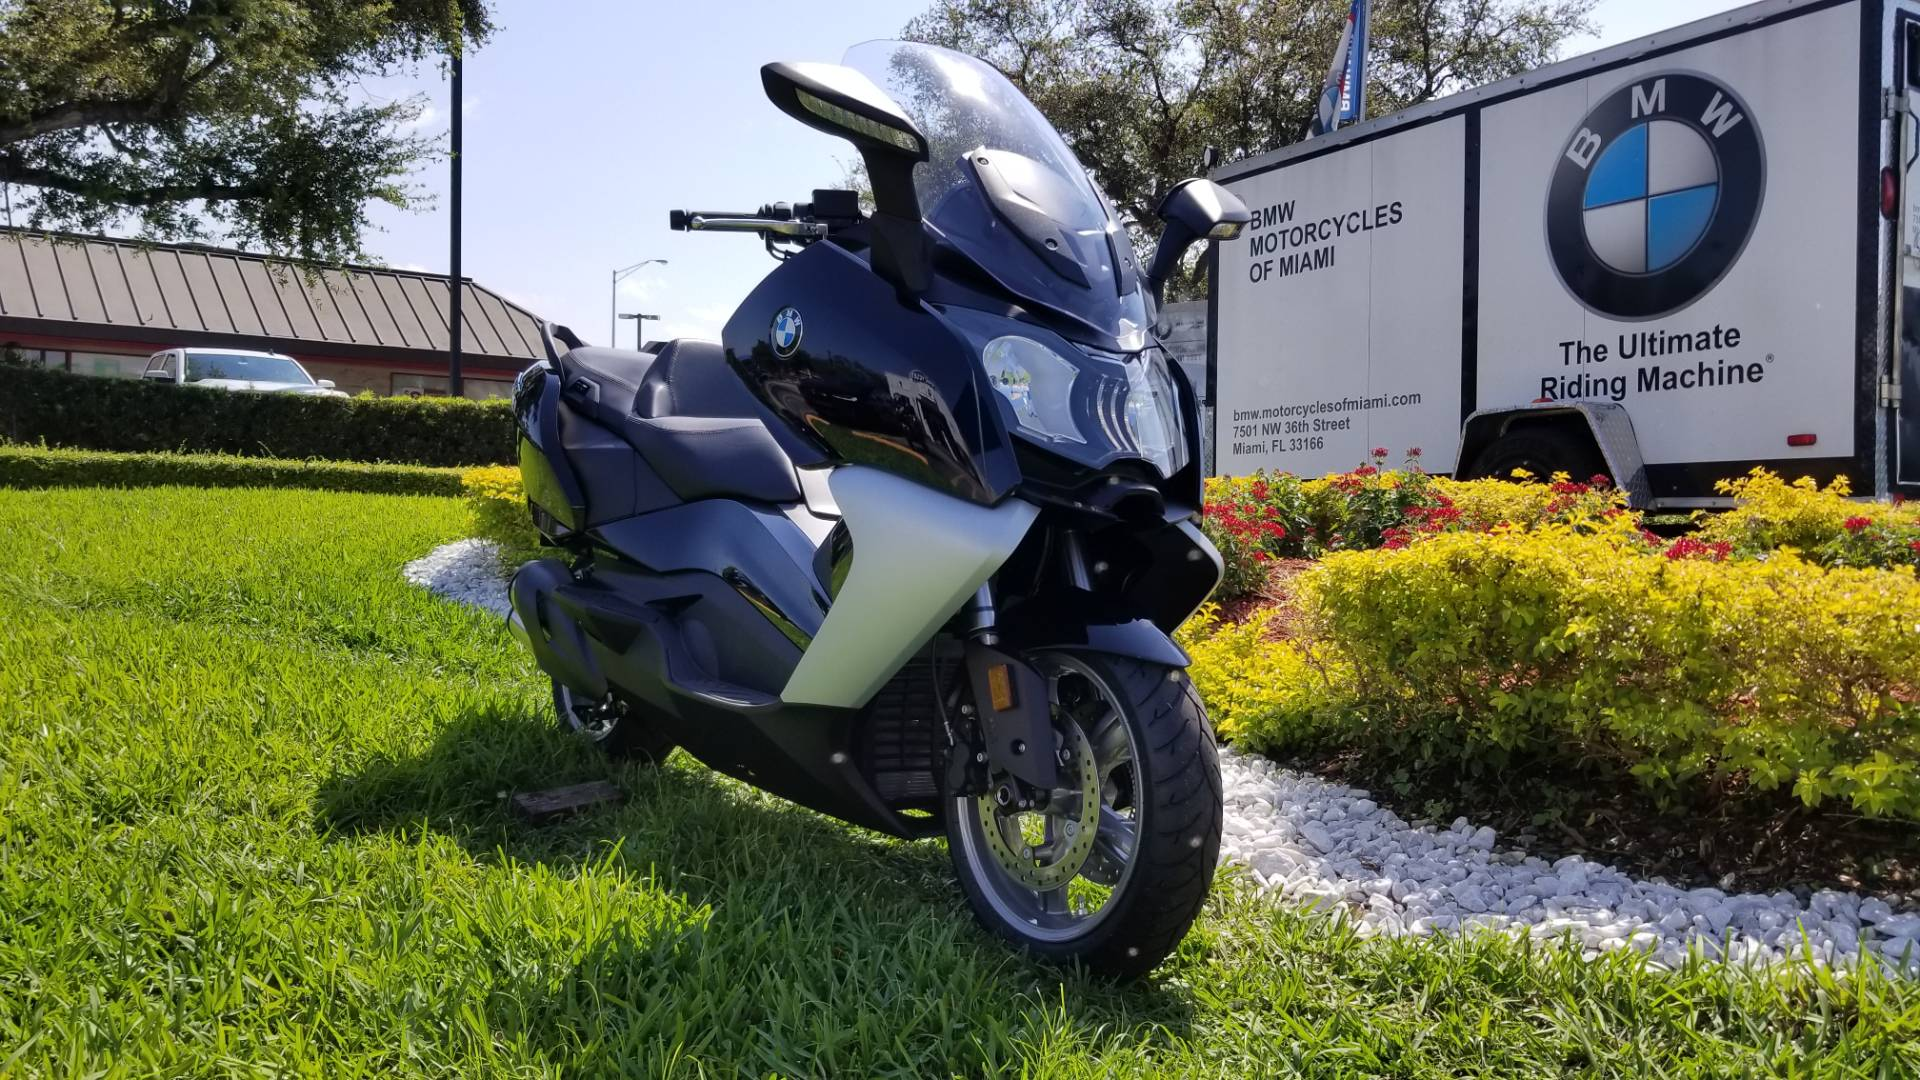 New 2019 BMW C 650 GT for sale, BMW C 650GT for sale, BMW Motorcycle C650GT, new BMW Scooter, Maxi Scooter, BMW. BMW Motorcycles of Miami, Motorcycles of Miami, Motorcycles Miami, New Motorcycles, Used Motorcycles, pre-owned. #BMWMotorcyclesOfMiami #MotorcyclesOfMiami #MotorcyclesMiami - Photo 1